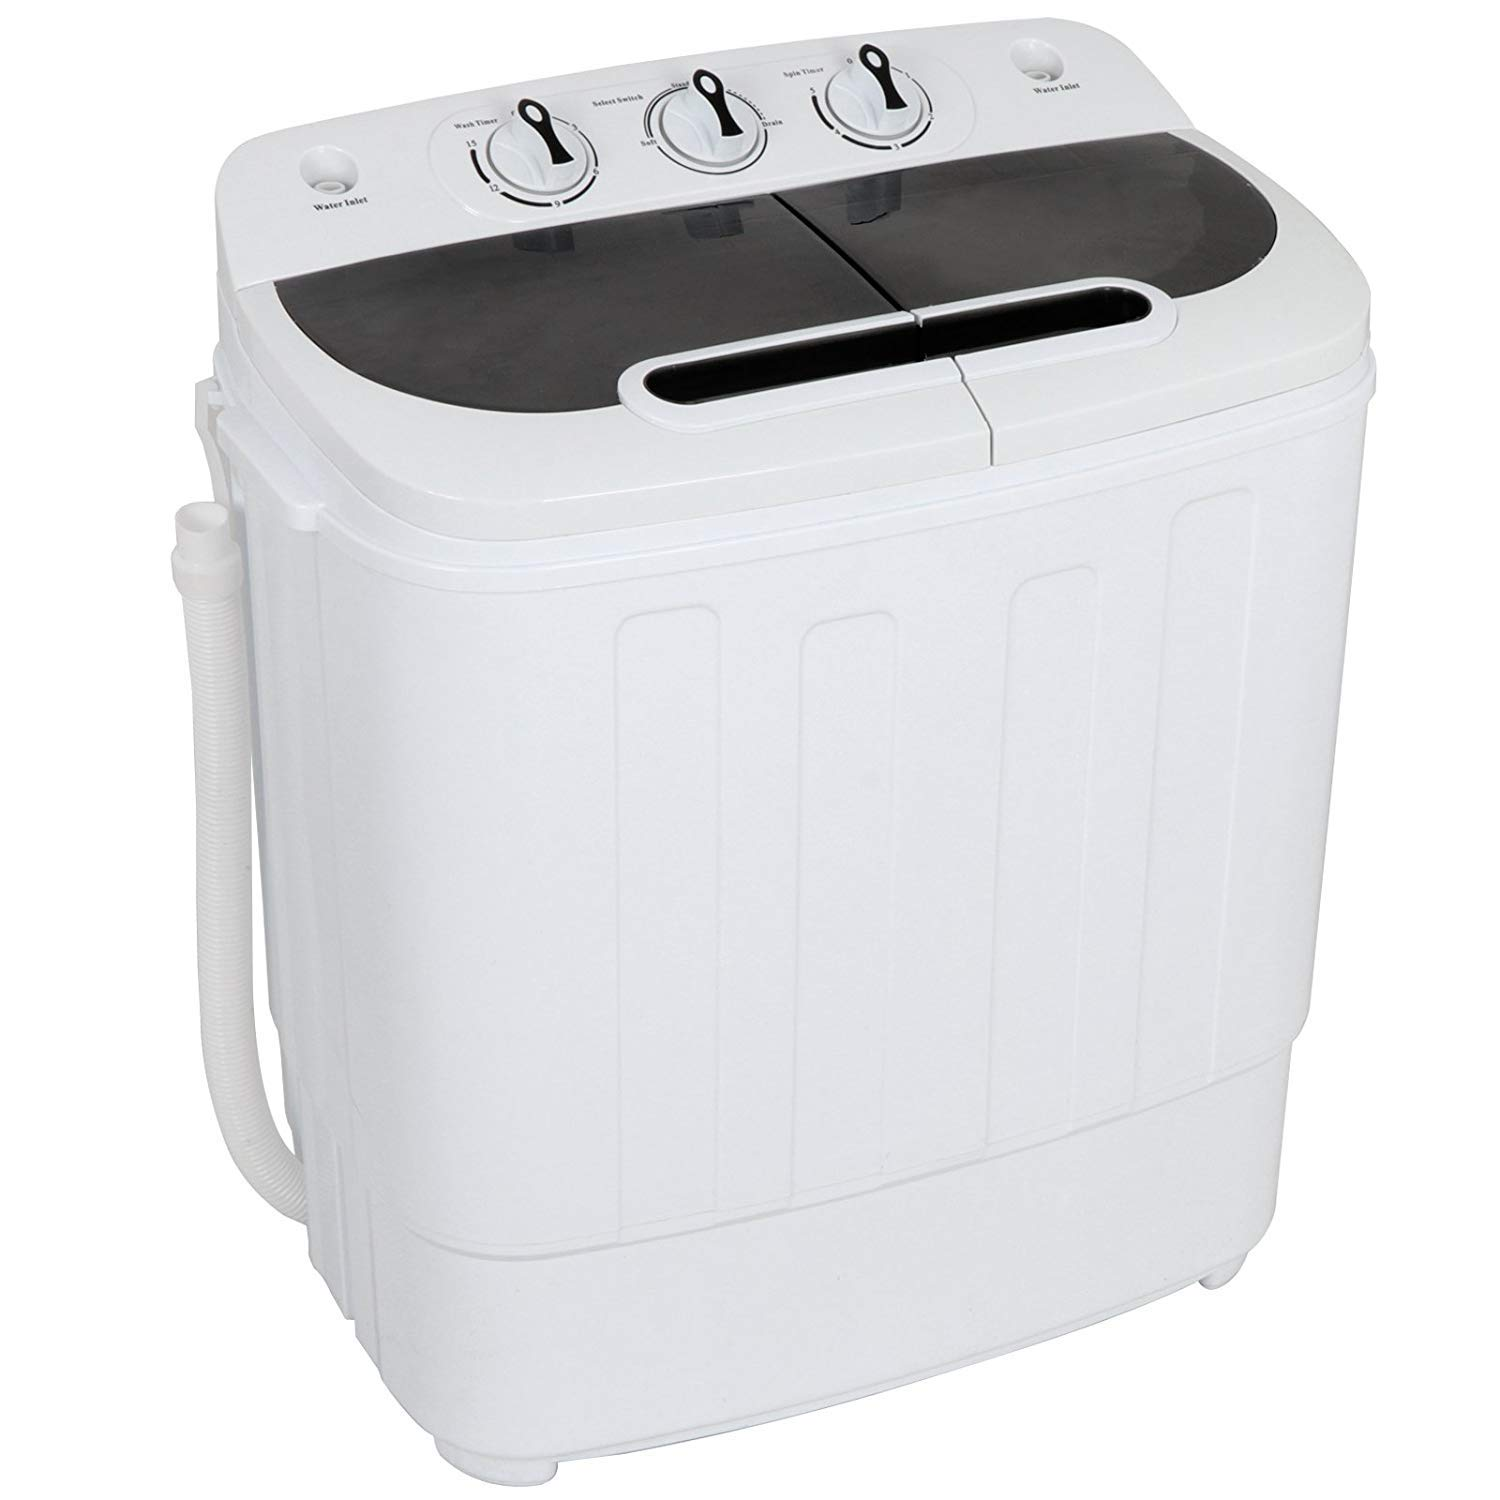 JupiterForce Portable Mini Compact Twin Tub Washing Machine 13 lbs Washer Spain Spinner Dryer Specialty Laundry Machine